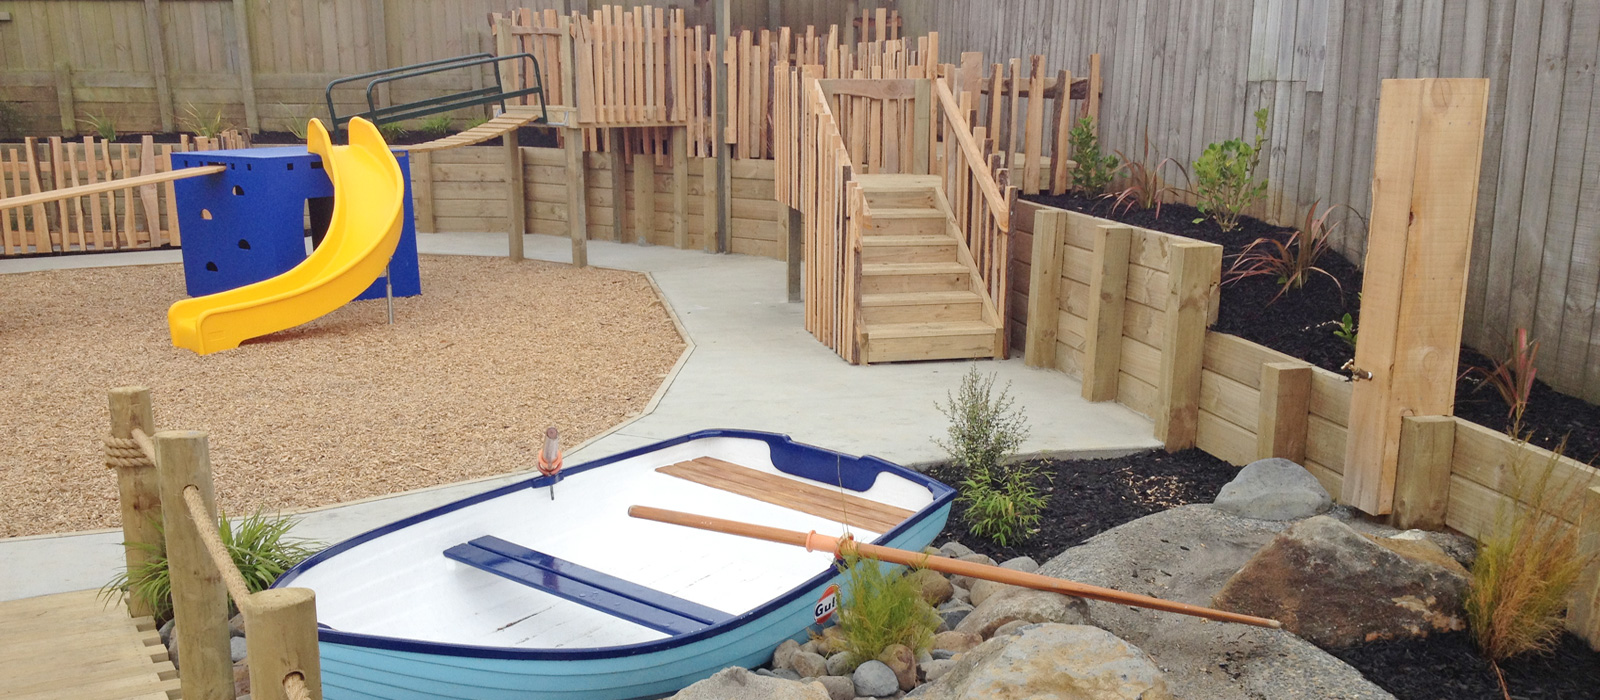 Adventure Play Areas & Play Equipment // Playscape Design